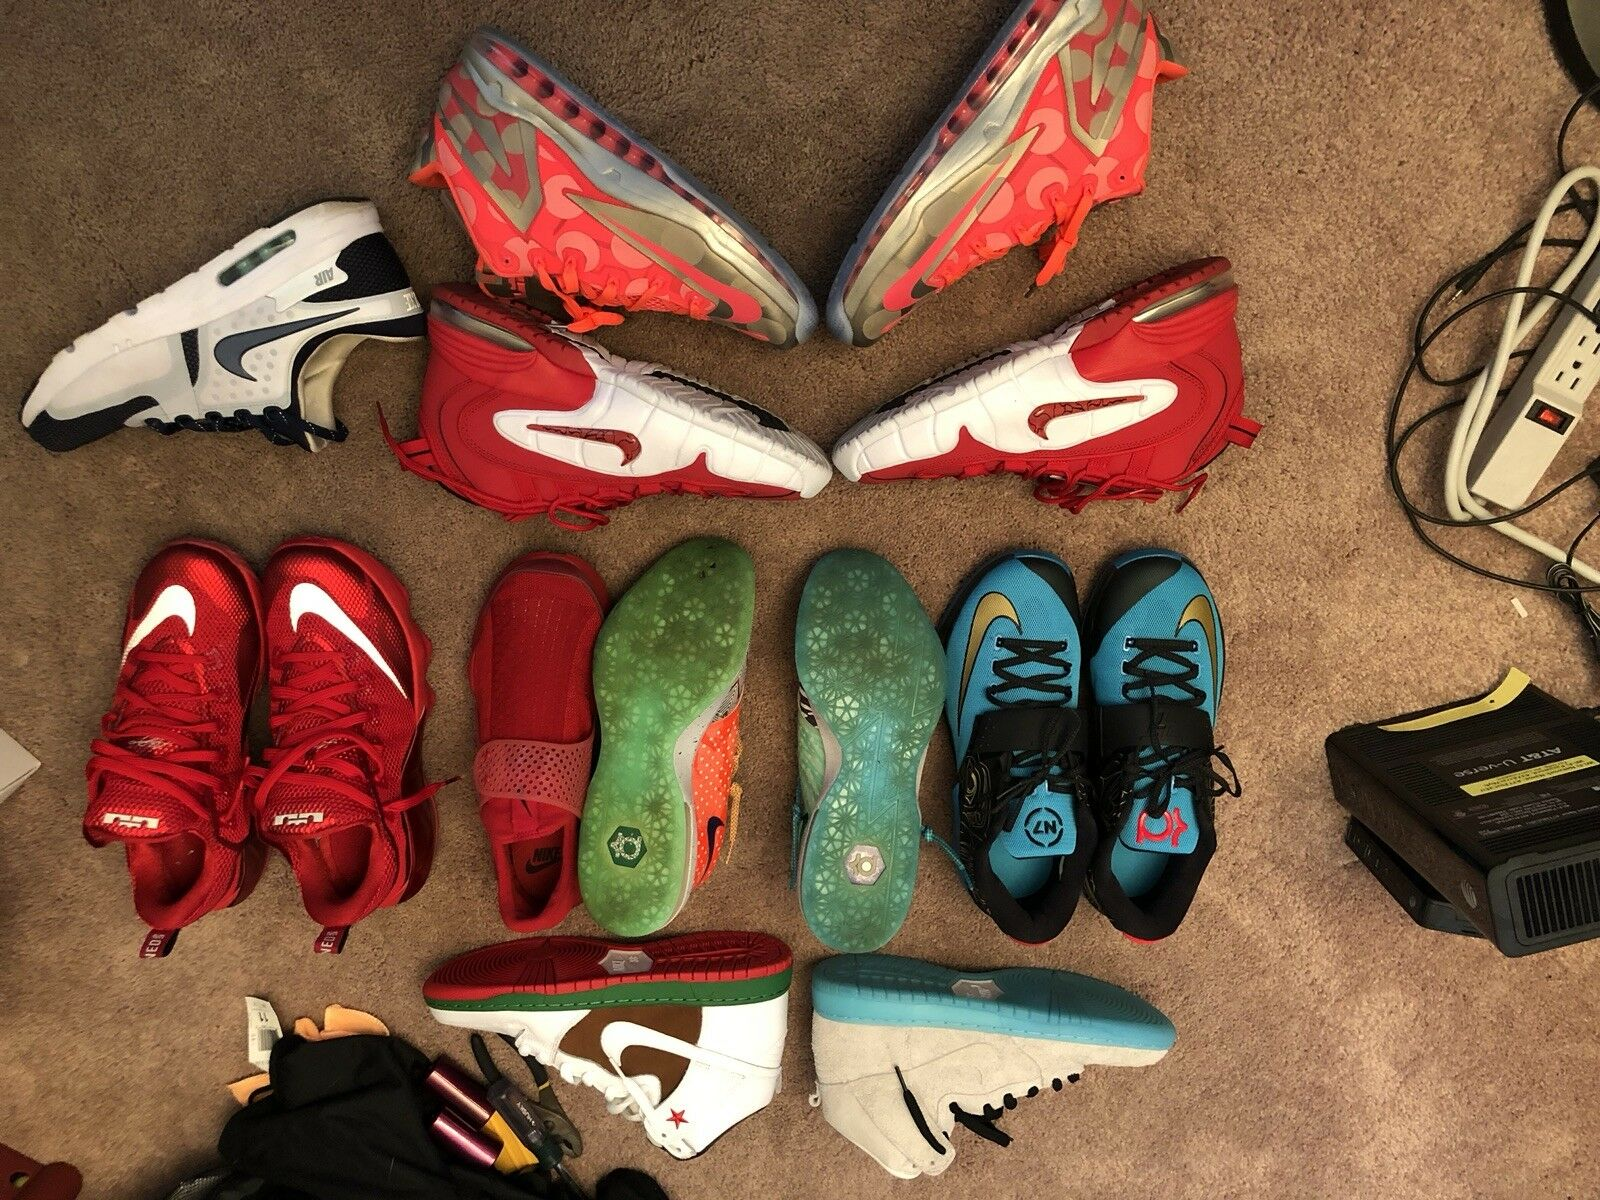 nike sneakers size 11 Lebron Kd Sb Deadstock Vnds Ds Shoes Basketball 10.5 New shoes for men and women, limited time discount